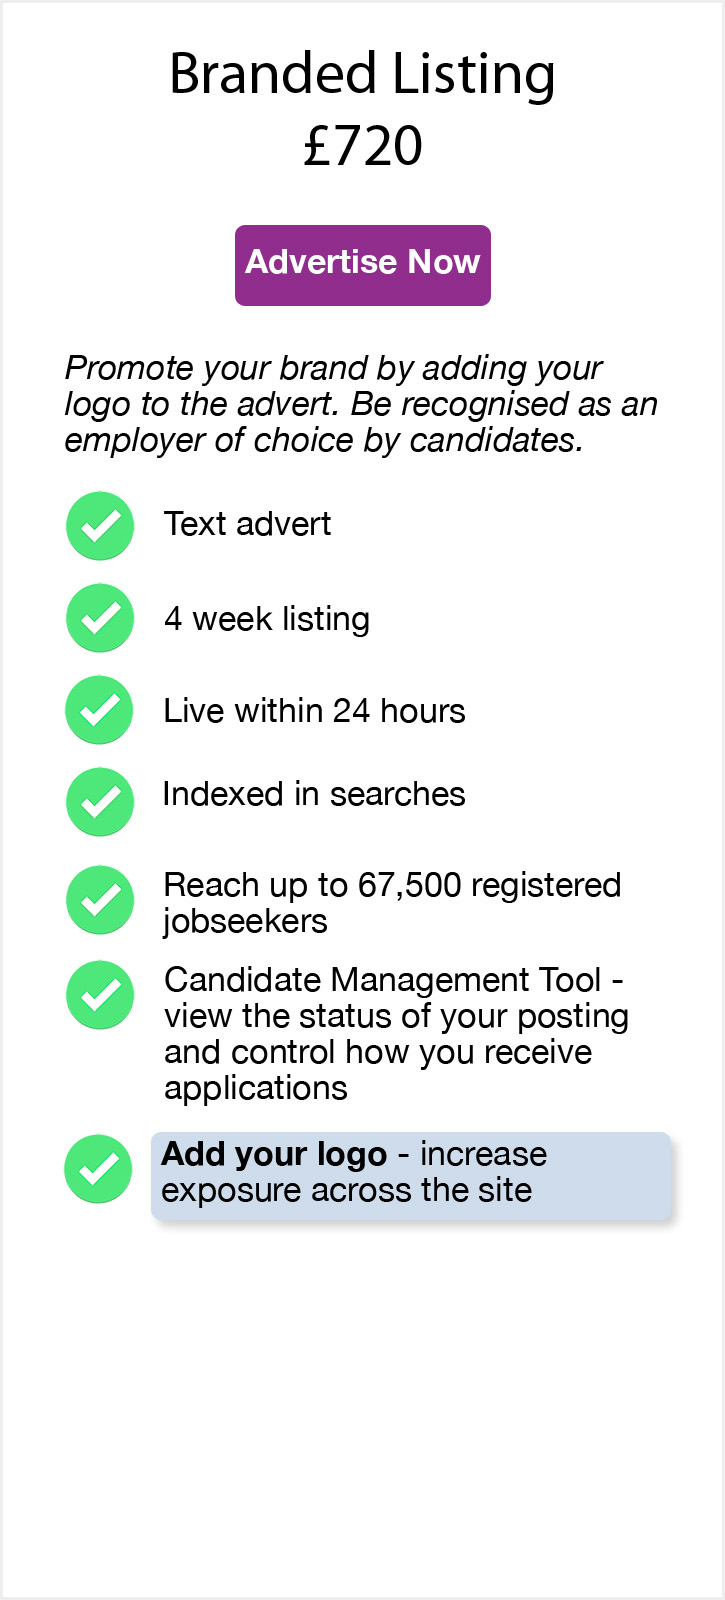 Branded Listing. £720. Advertise Now. Promote your brand by adding your logo to the advert. Be recognised as an employer of choice by candidates. Text advert. 4 week listing. Live within 24 hours. Indexed in searches. Reach up to 67,500 registered jobseekers. Candidate Management Tool - view the status of your posting and control how you receive applications. Add your logo - increase exposure across the site.